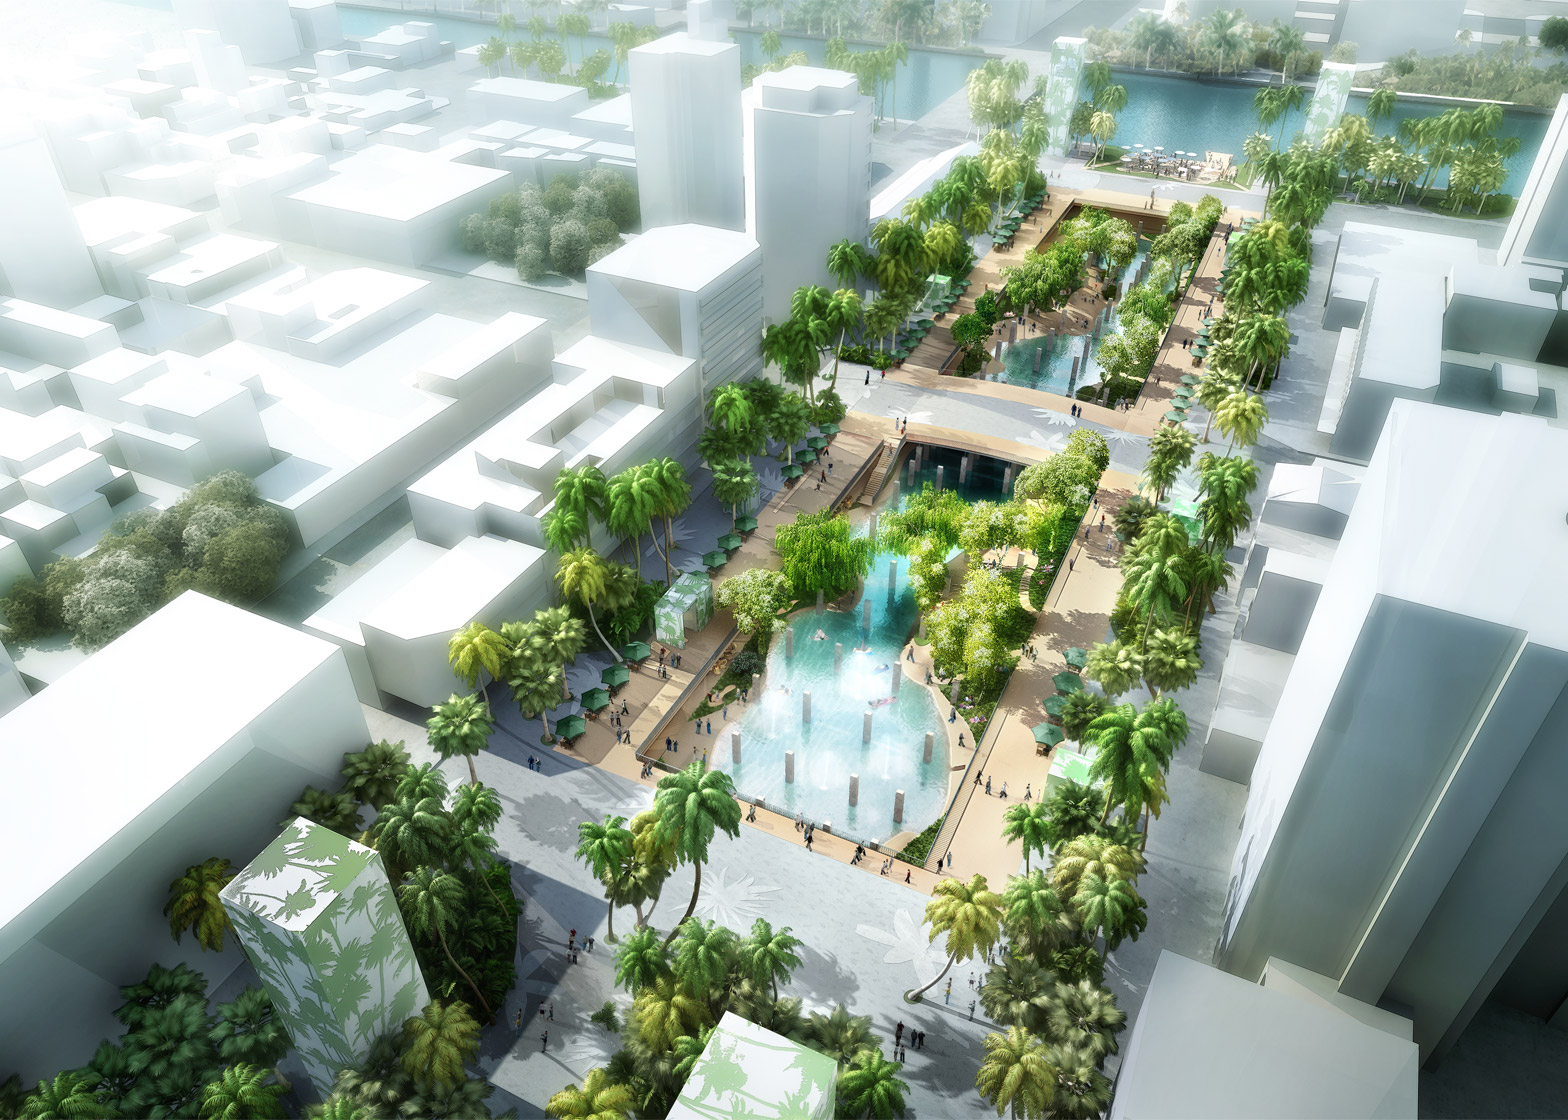 Urban pool by MVRDV